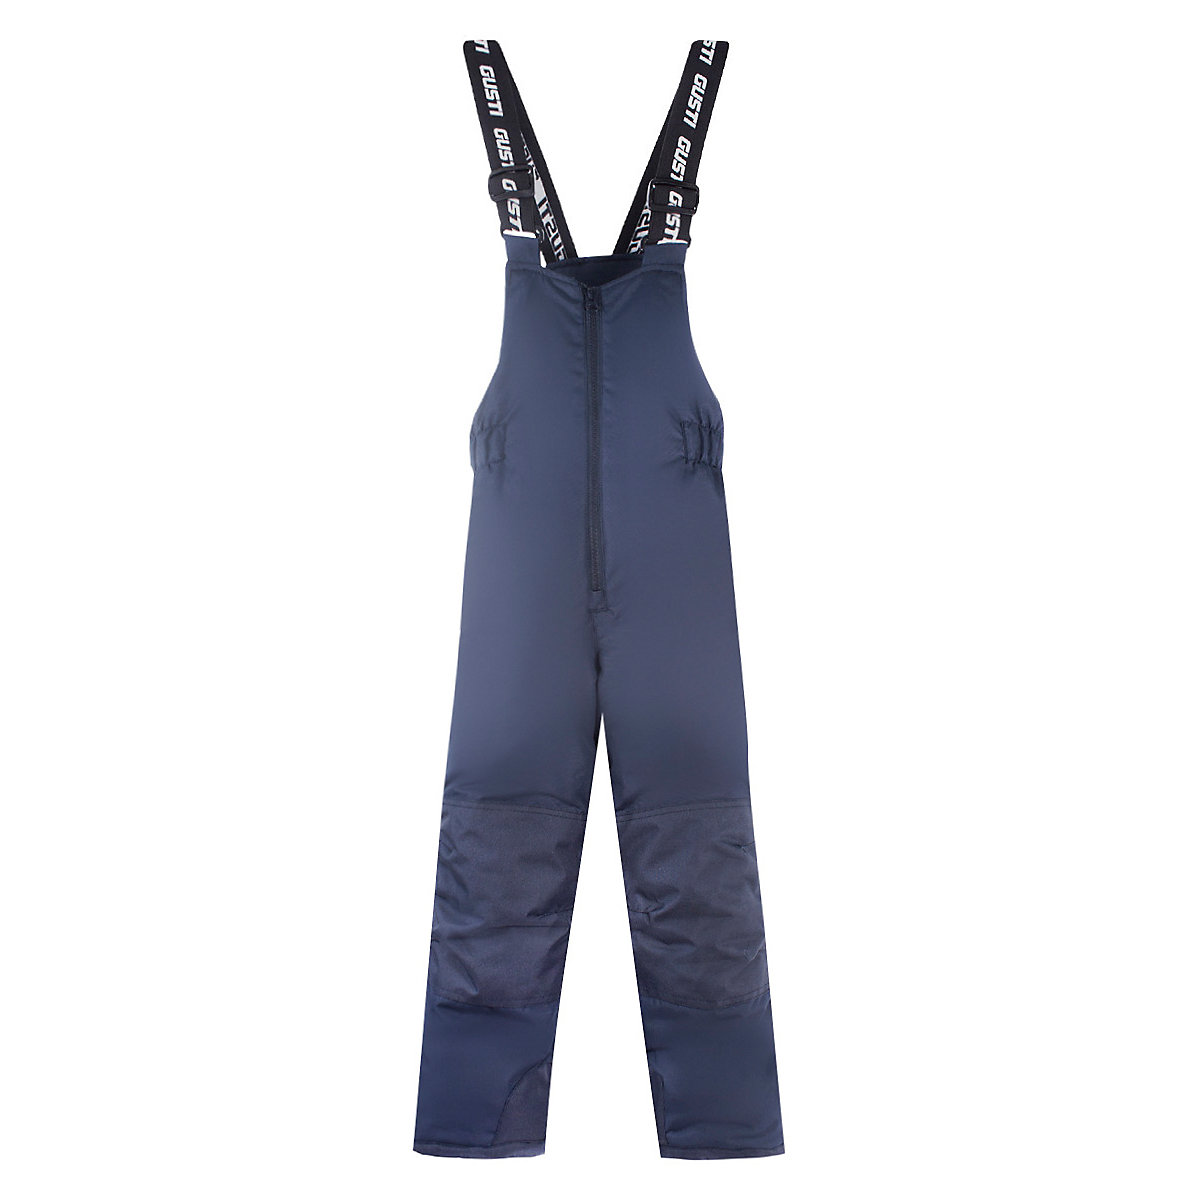 GUSTI Pants & Capris 9511938 clothes for boys boy for children clothing